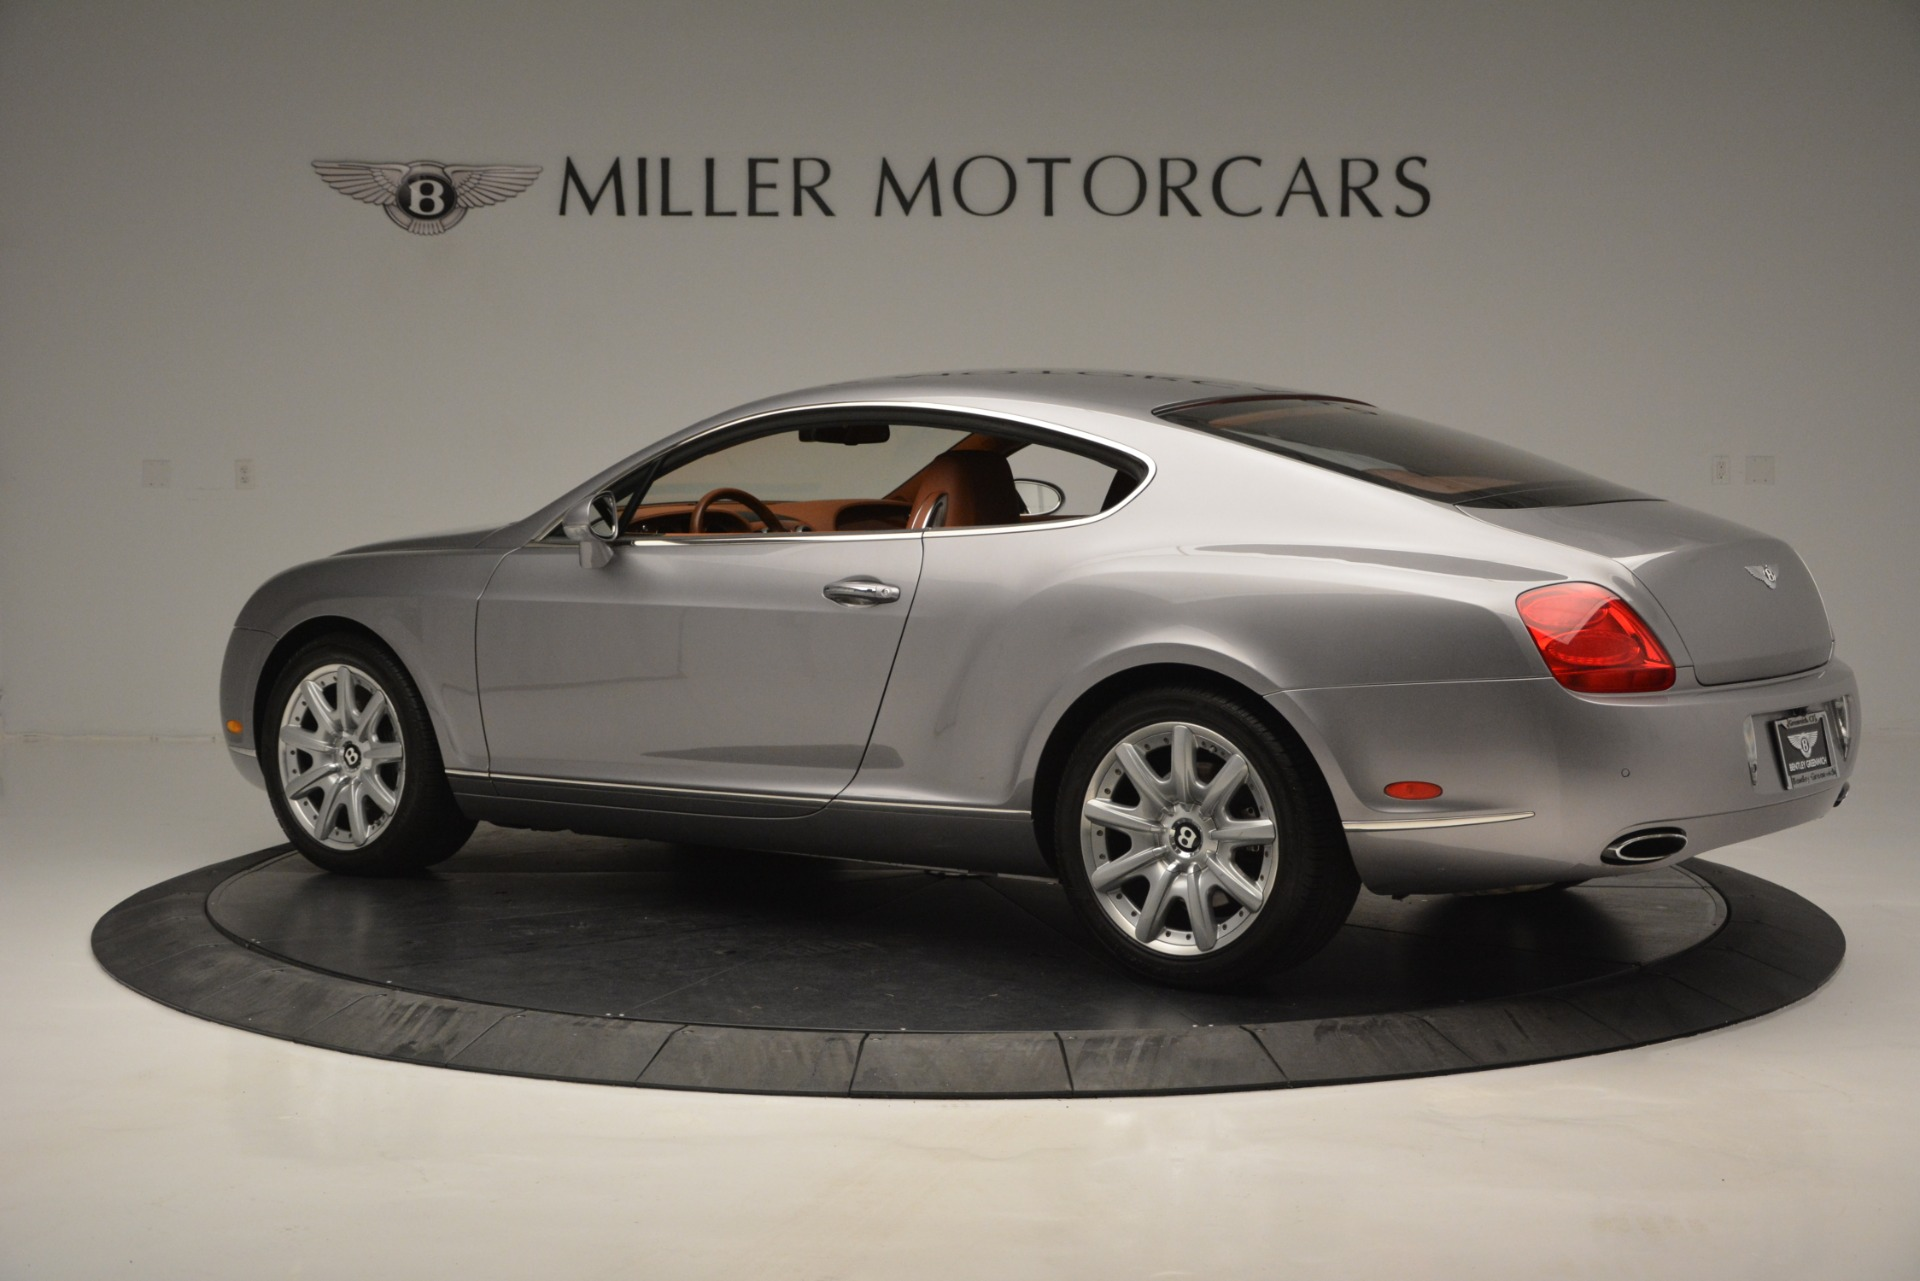 Used 2005 Bentley Continental GT GT Turbo For Sale In Westport, CT 2726_p4